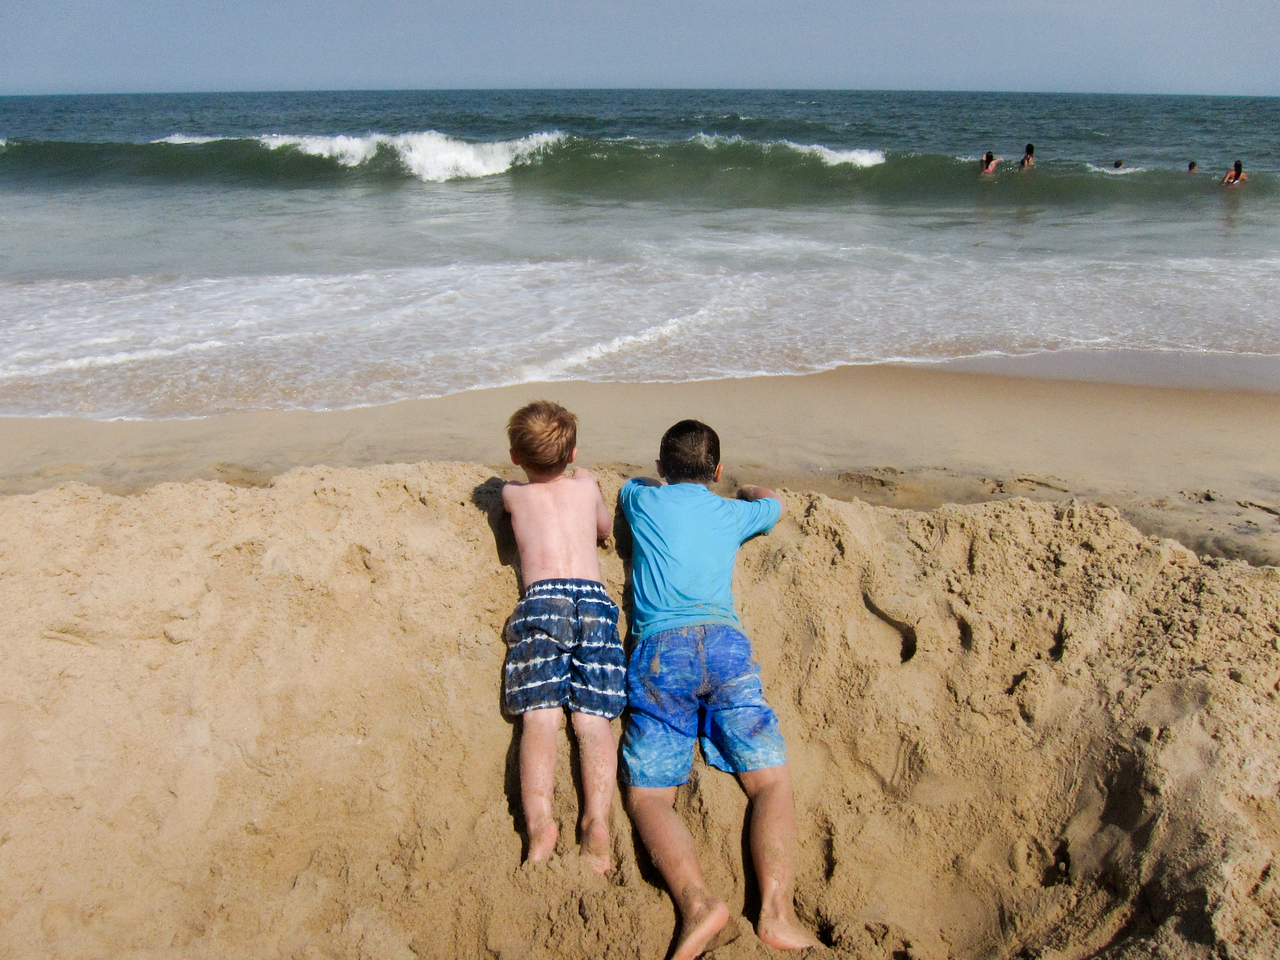 K.C. and Ethan take a break to enjoy watching the waves.